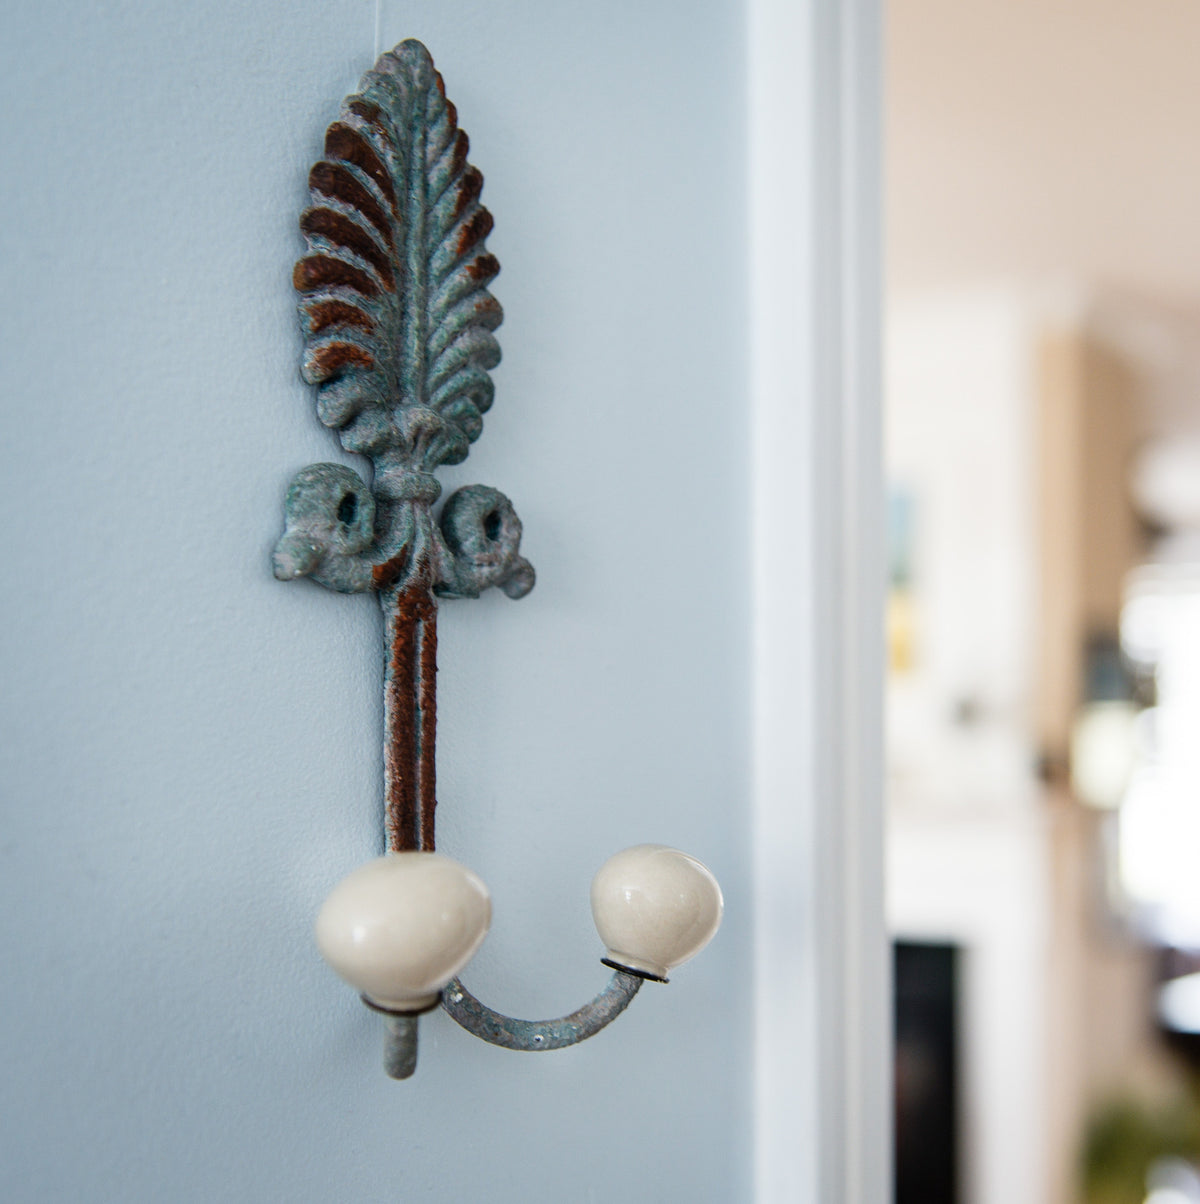 Bargain Basement - SALE! Knobs, Hooks & Napkin Rings